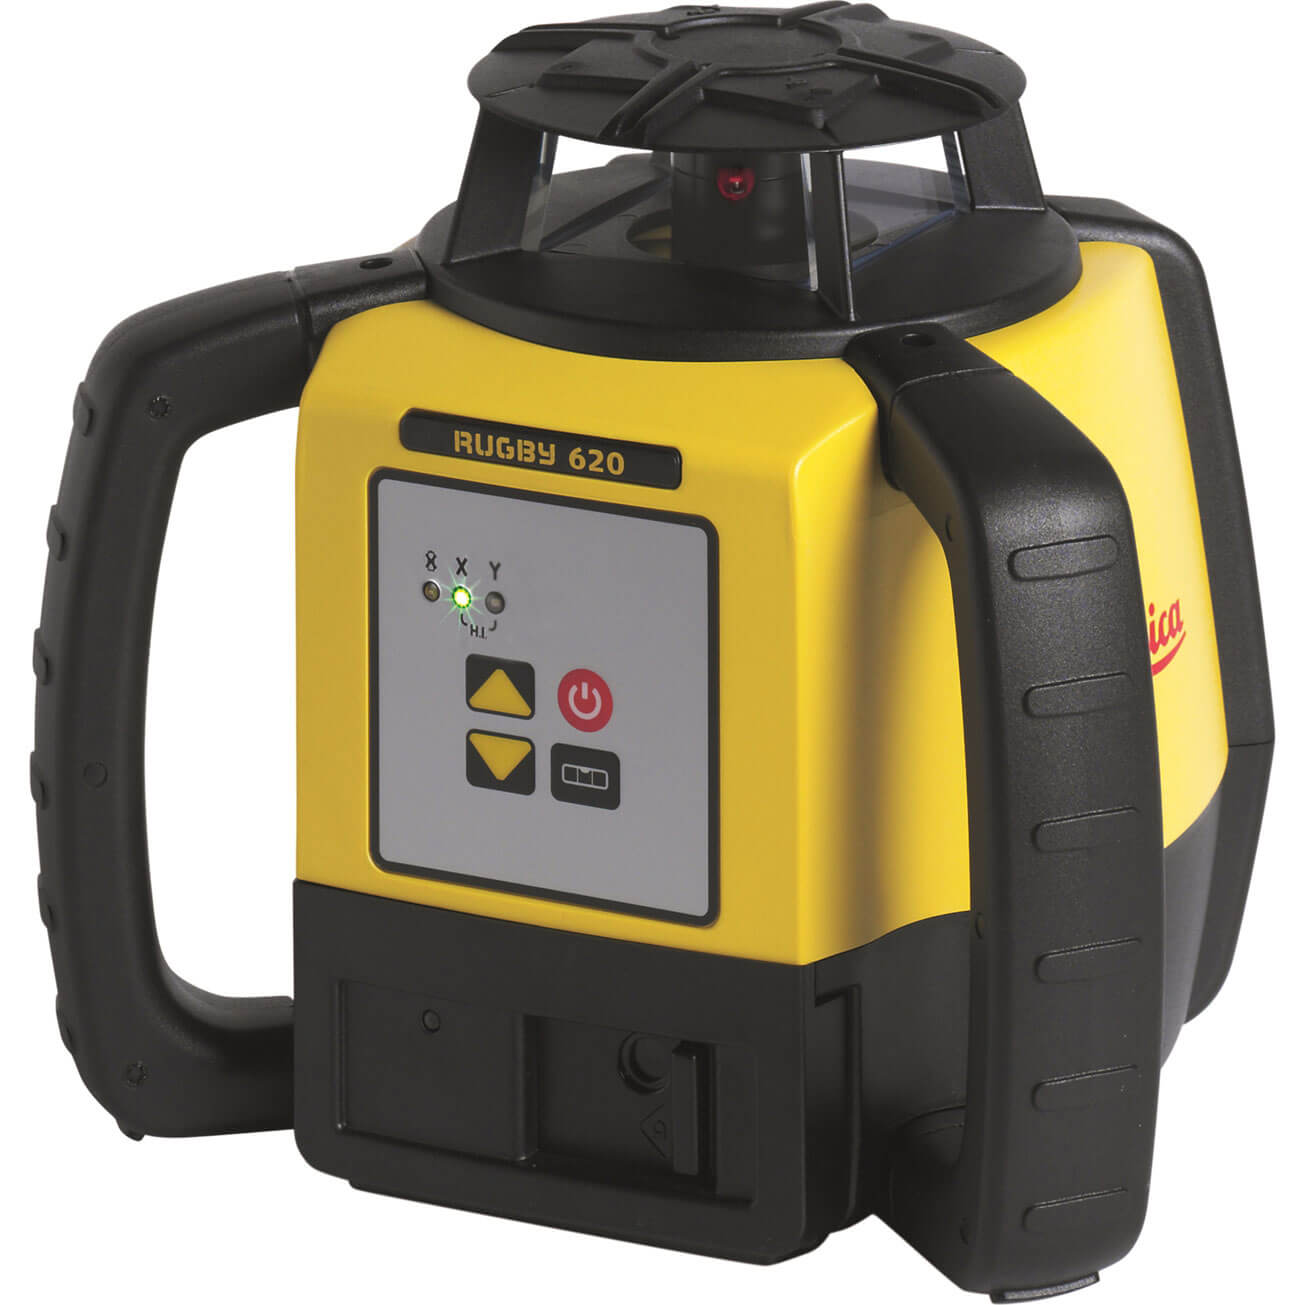 Image of Leica Geosystems Rugby 620 Rotating Self Levelling Laser Level